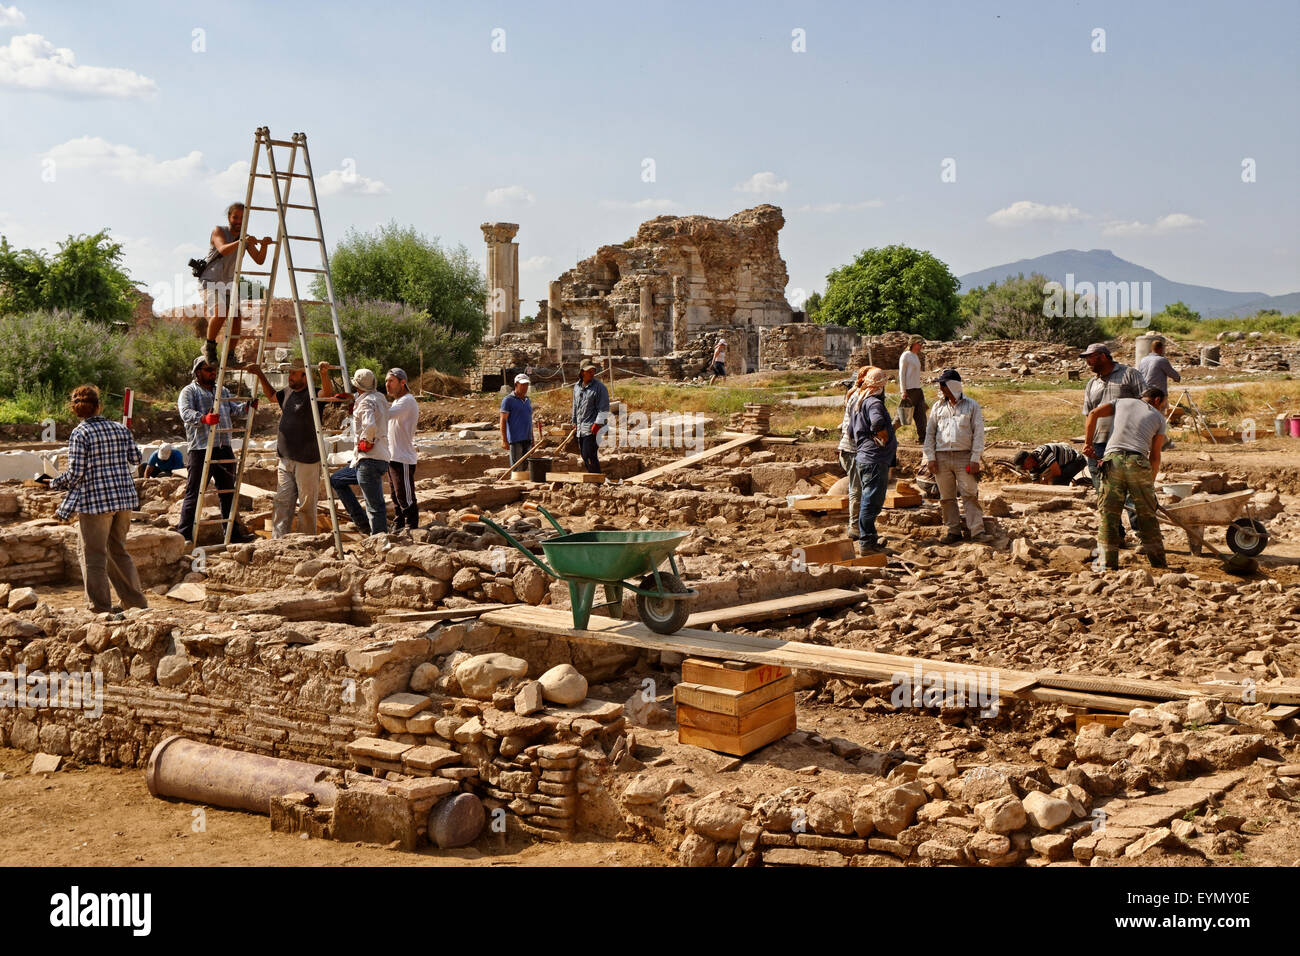 Ongoing archaeology work at the ancient Roman and Greek city of Ephesus near Selcuk, Kusadasi, Turkey. - Stock Image